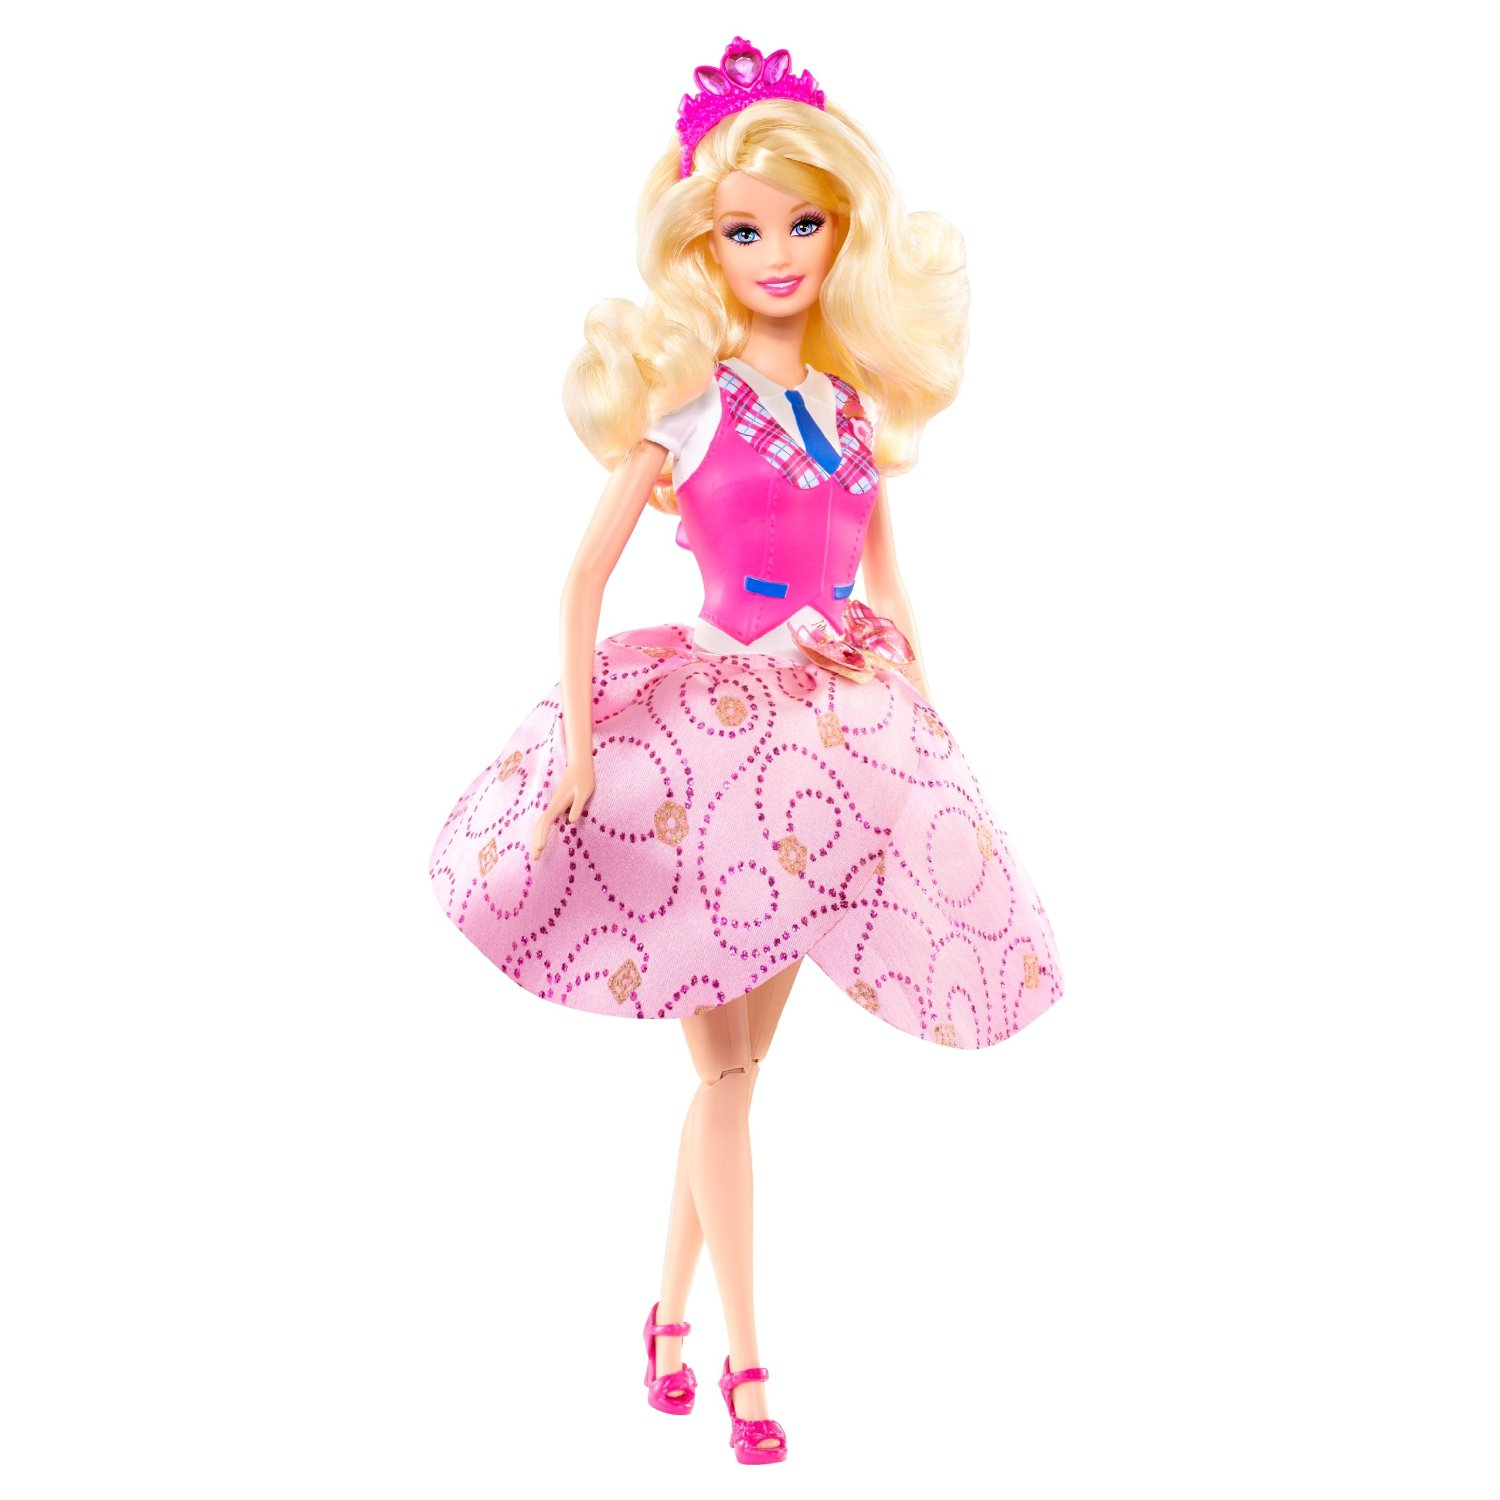 Free Barbie Doll Cliparts, Download Free Clip Art, Free Clip.